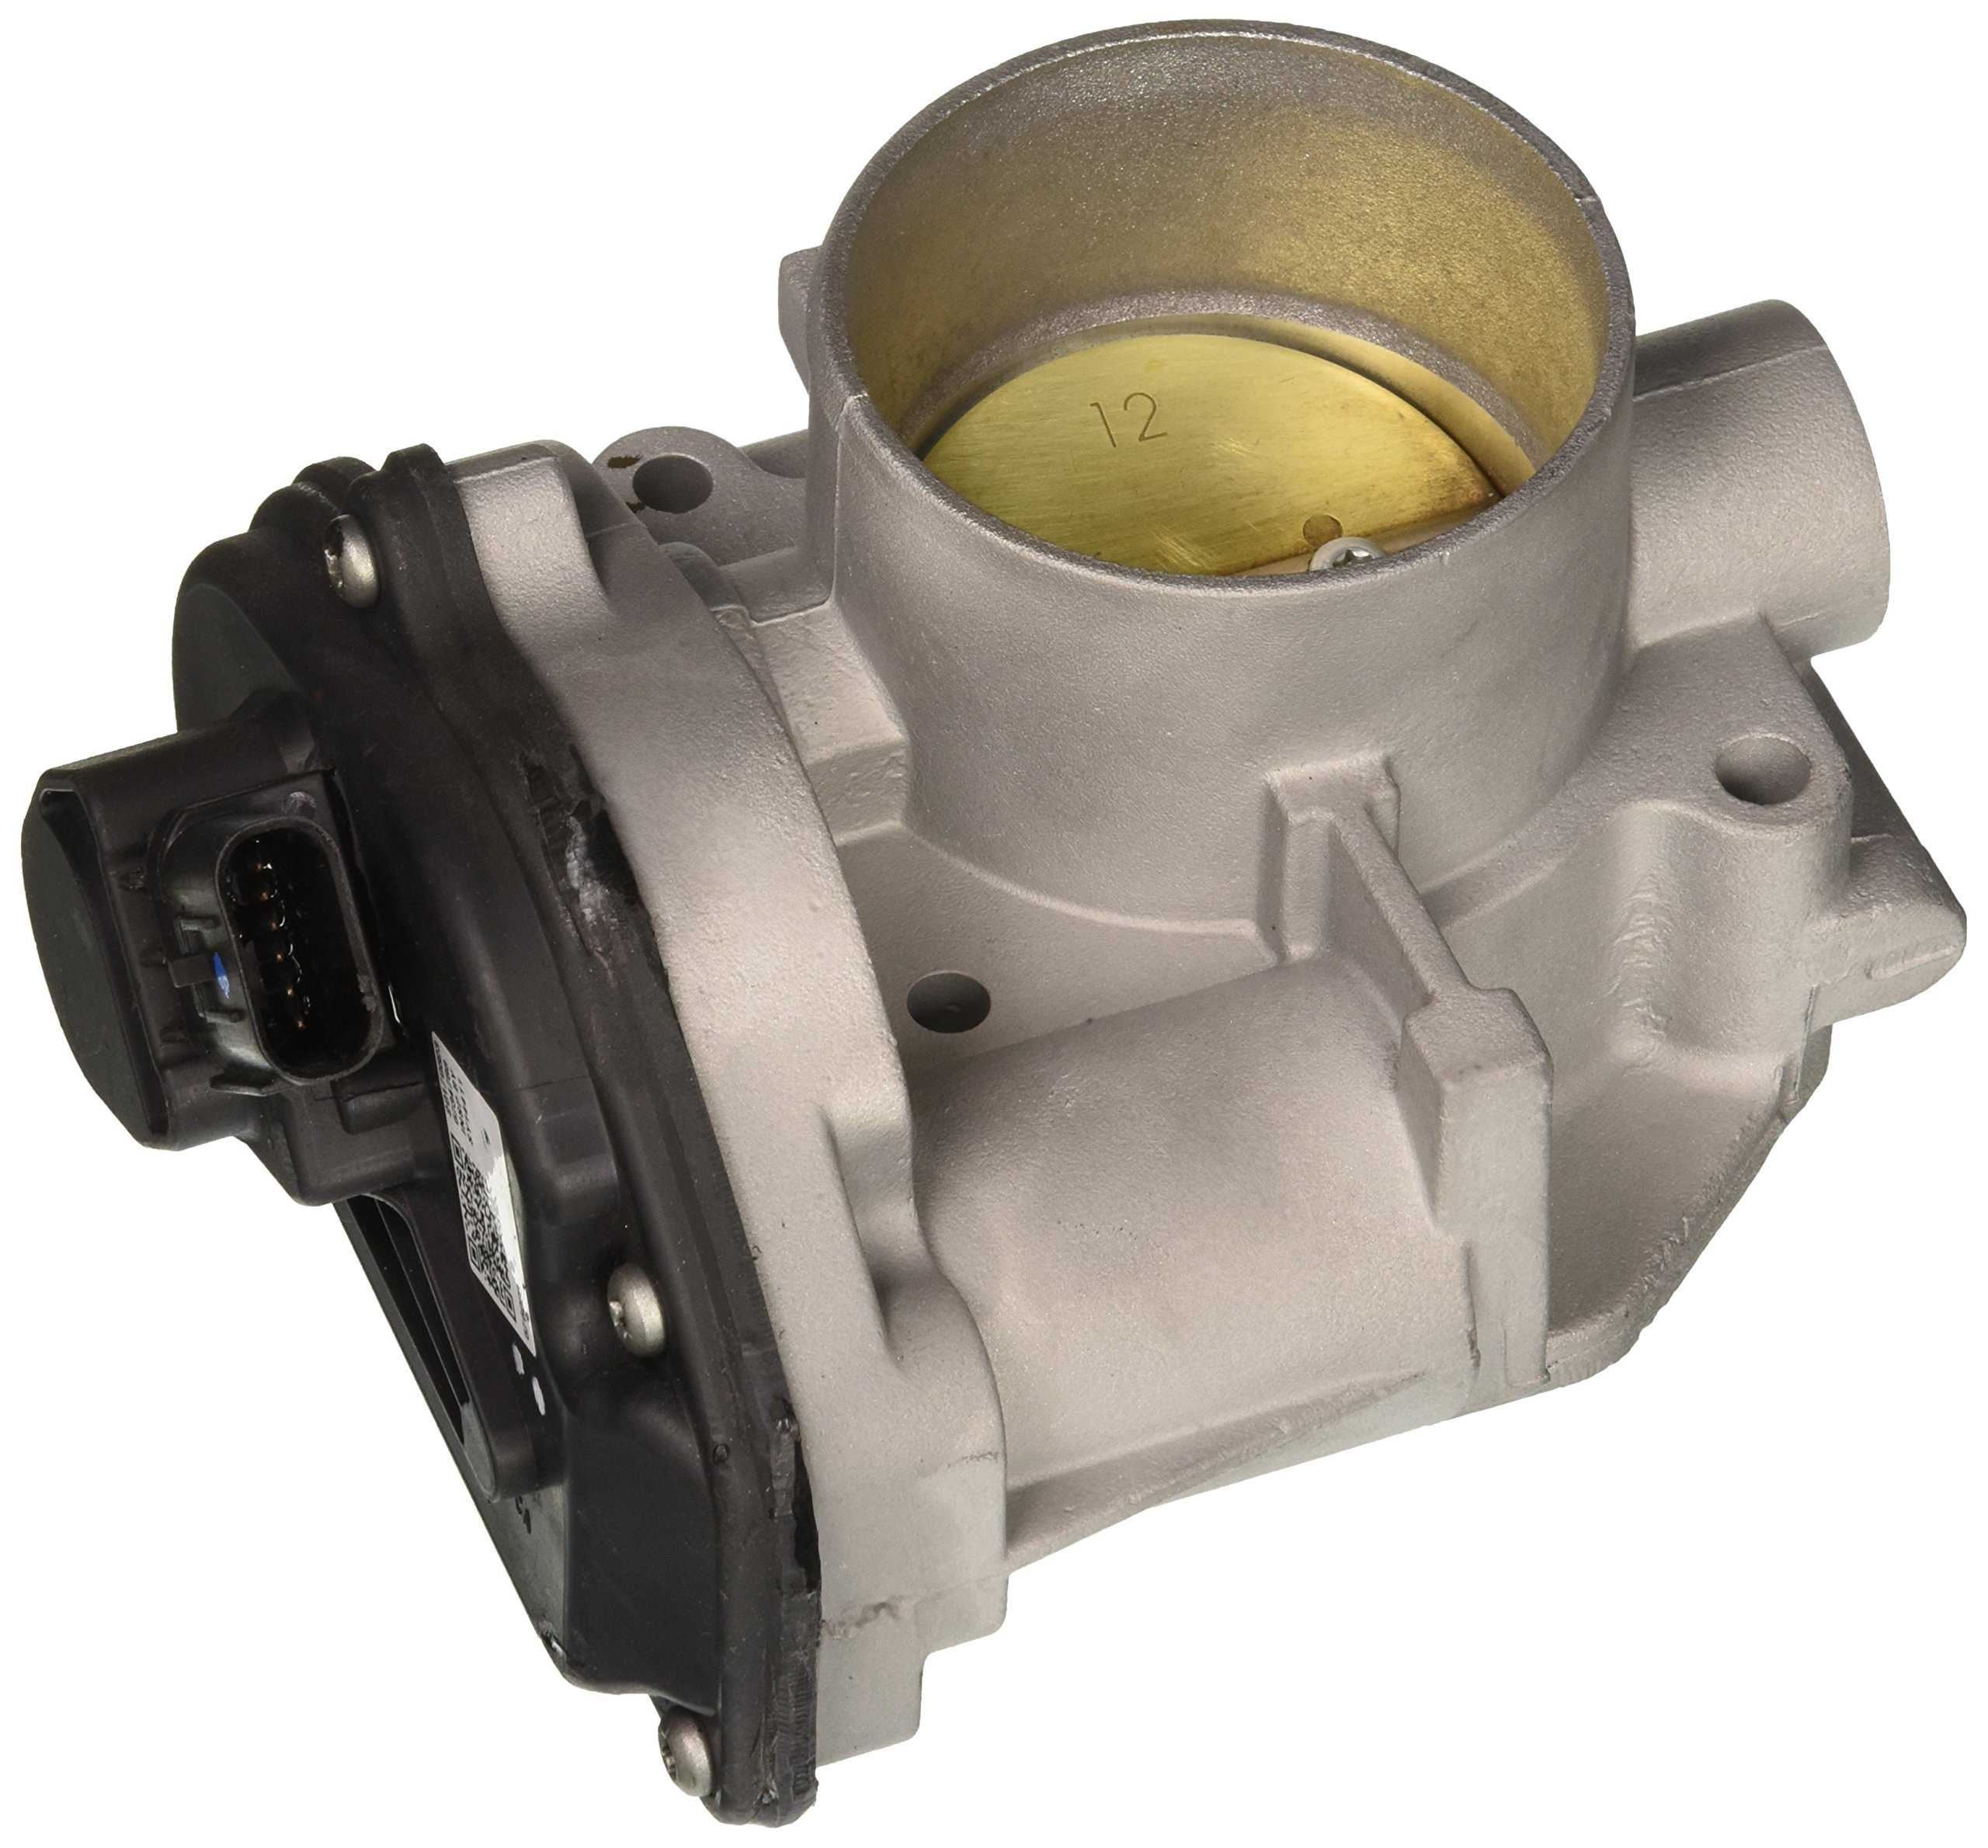 A1 Cardone 67-6008 Electronic Throttle Body (Remanufactured Ford/Merc Cars/Trk 2007-2005)